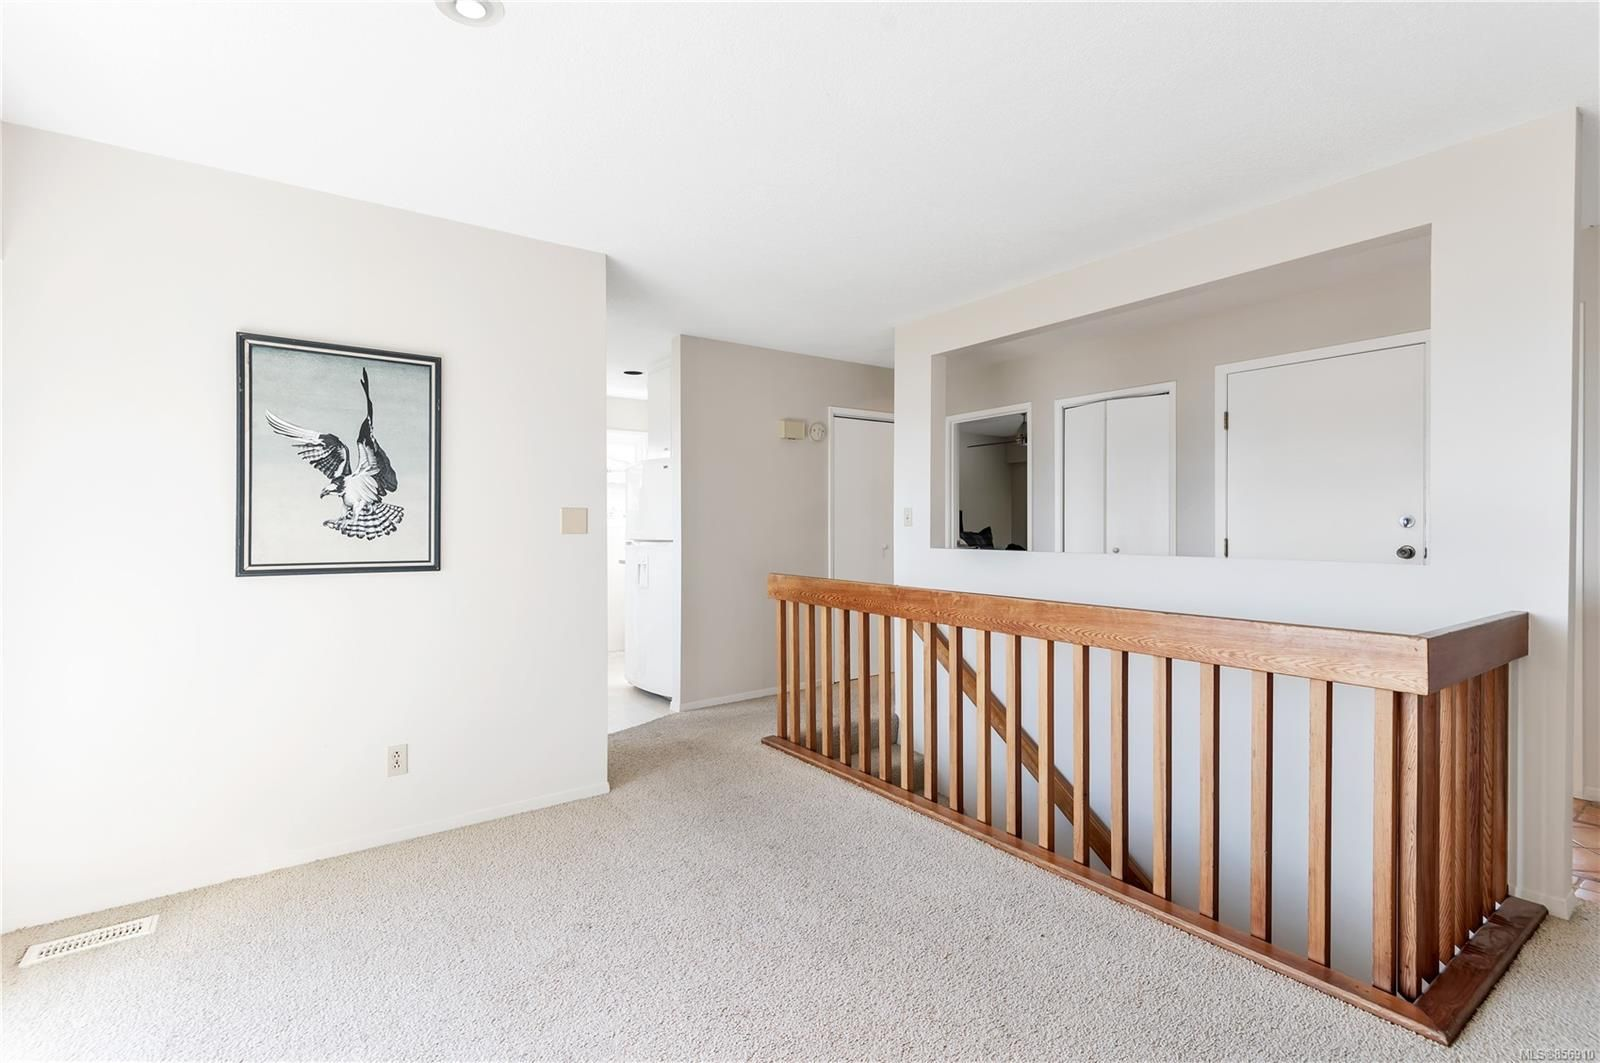 Photo 24: Photos: 215 S Alder St in : CR Campbell River Central House for sale (Campbell River)  : MLS®# 856910